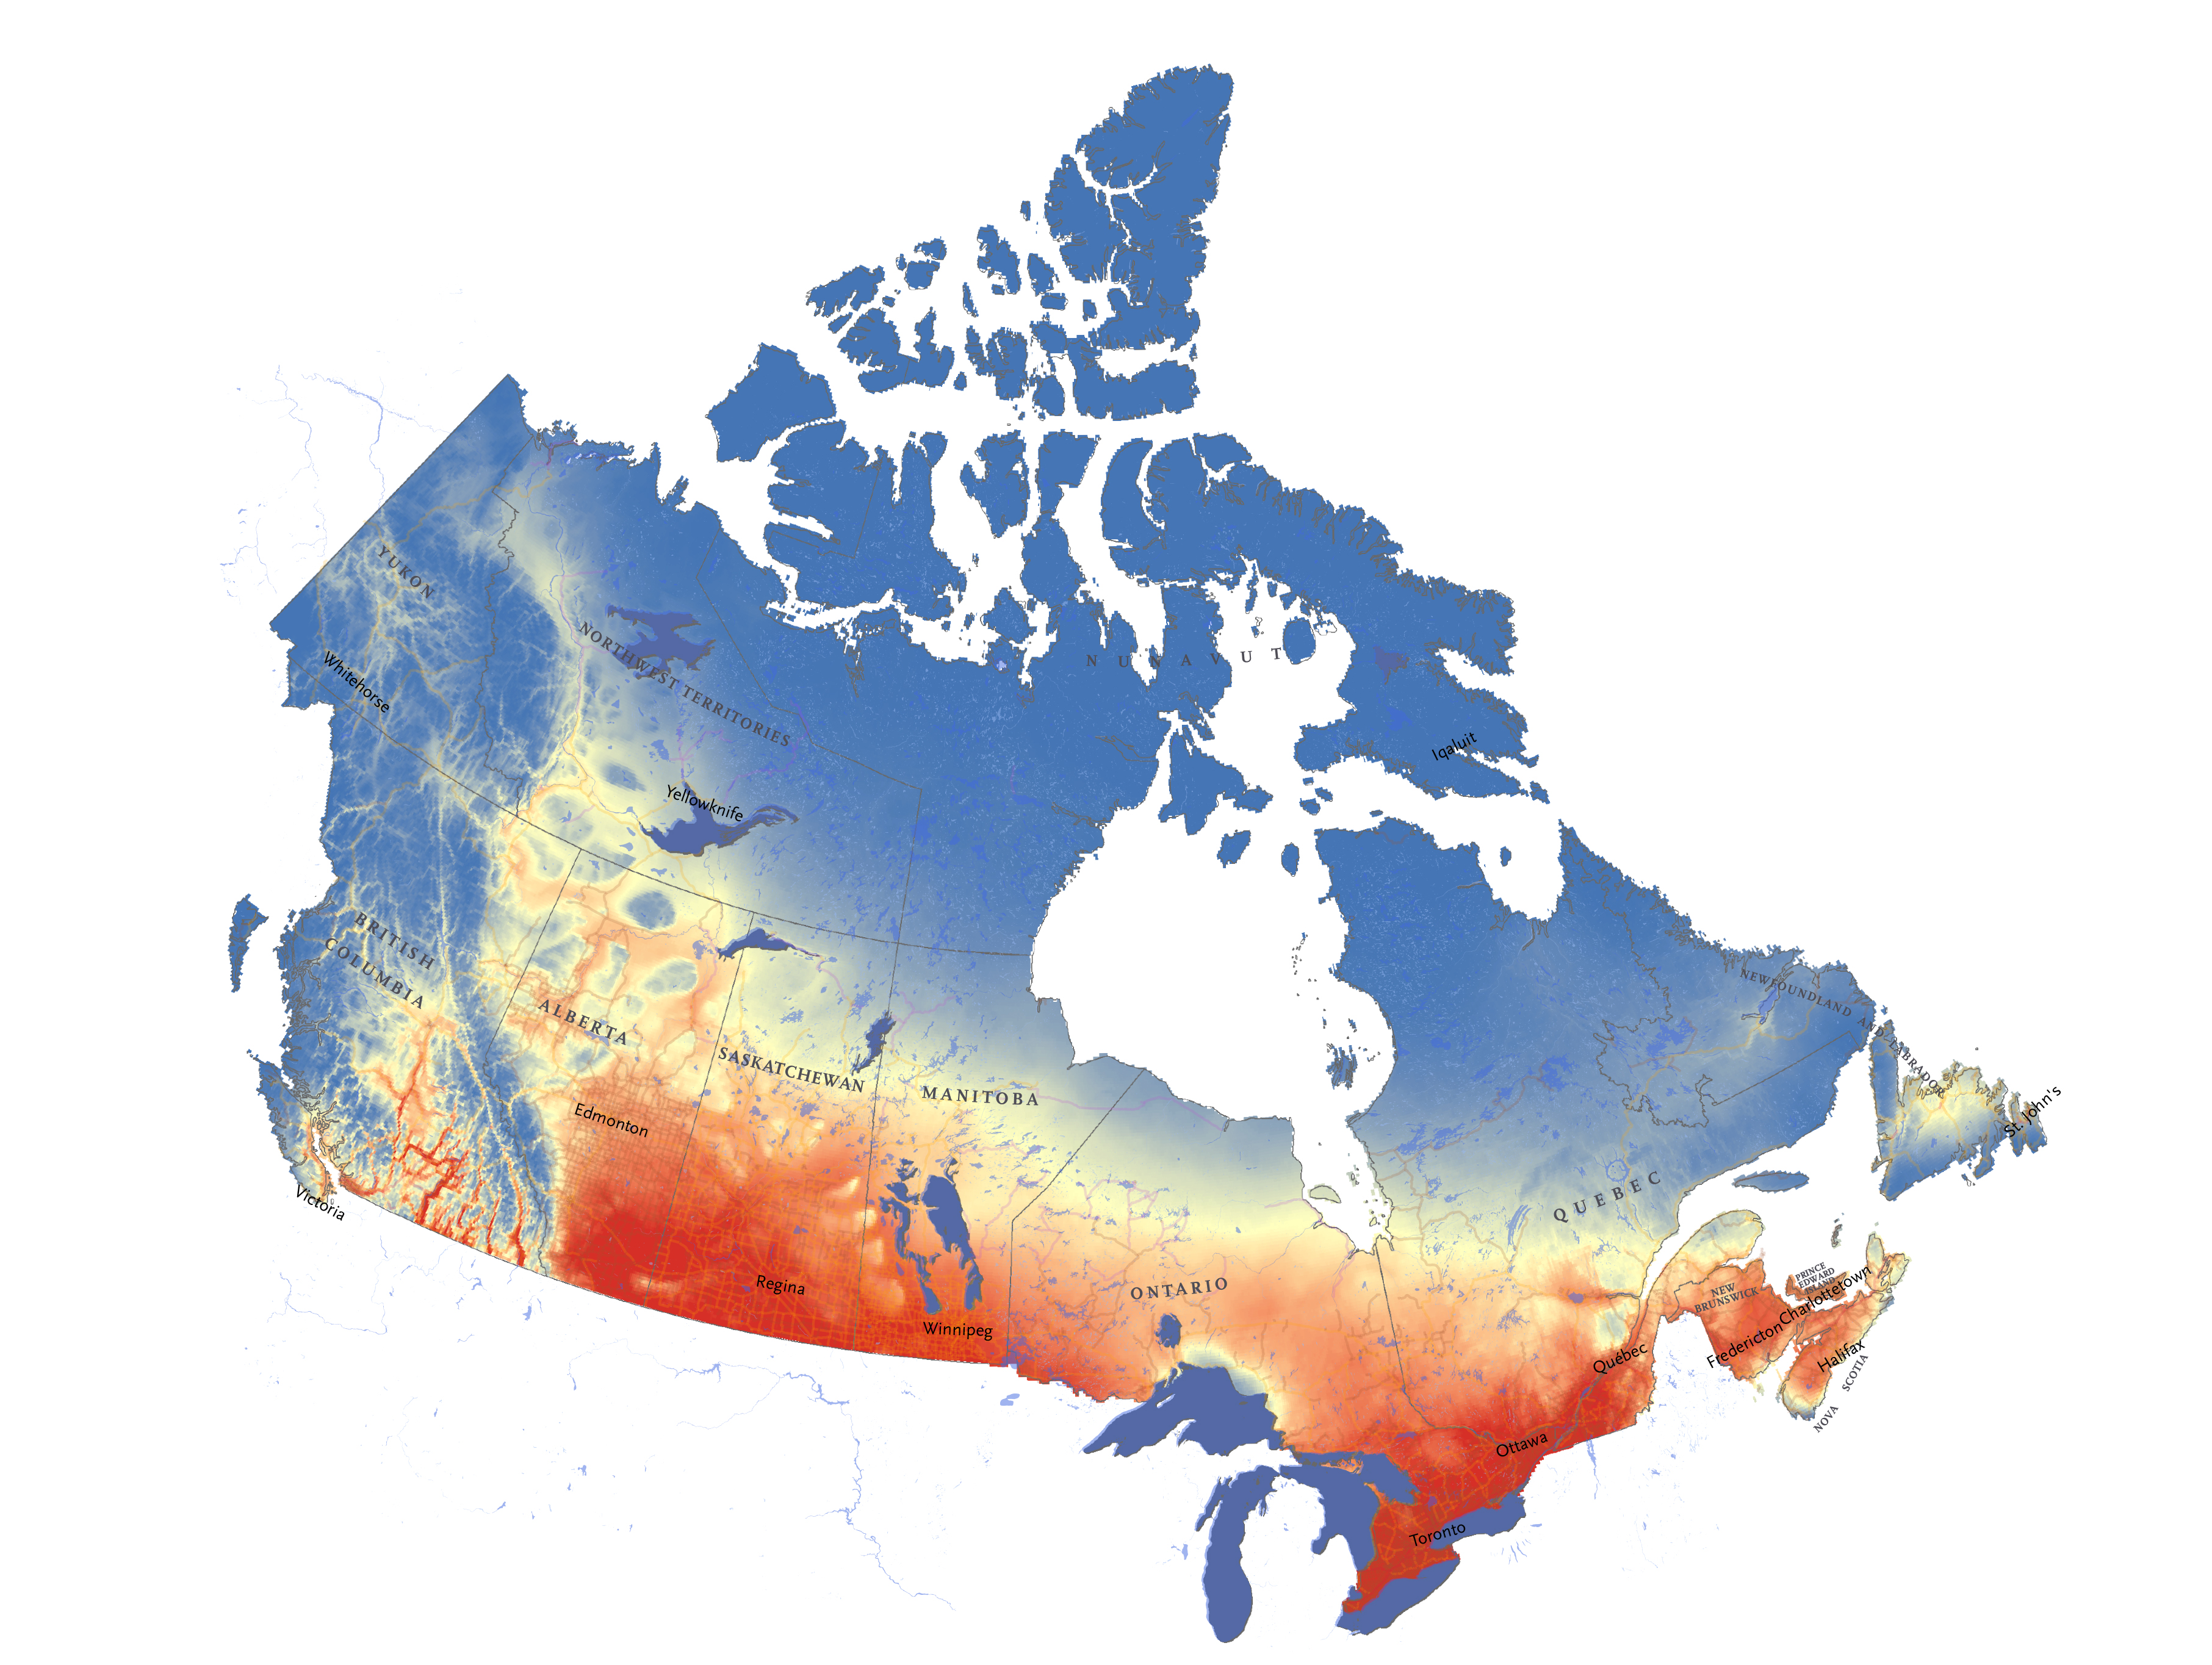 Climate Change Map Canada Mapping Canada's climate future | Canadian Geographic